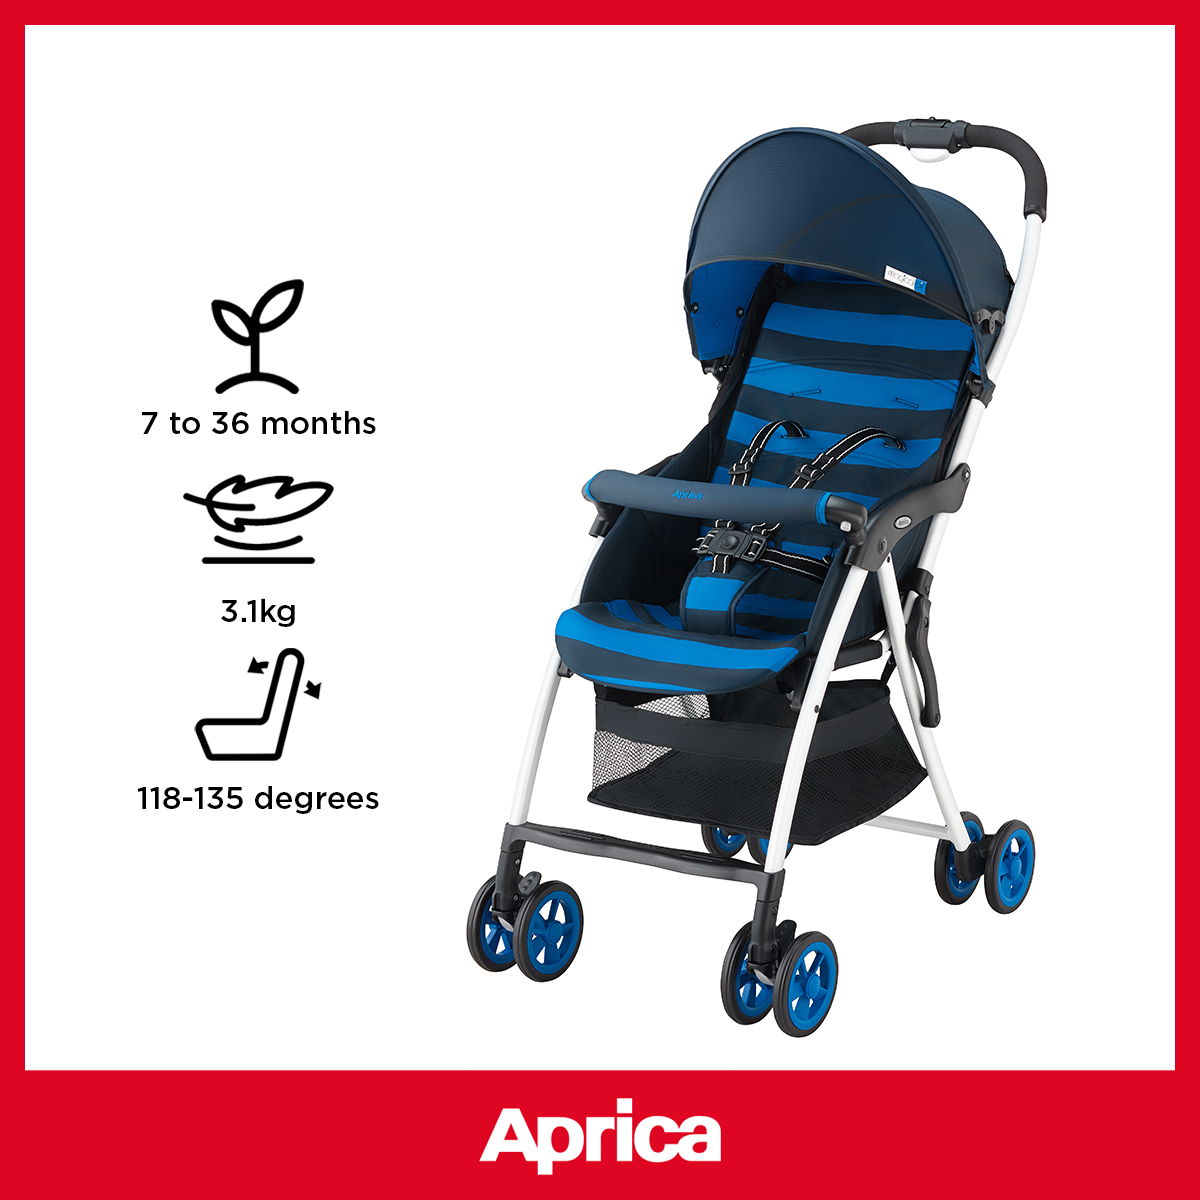 34++ Aprica optia stroller review information